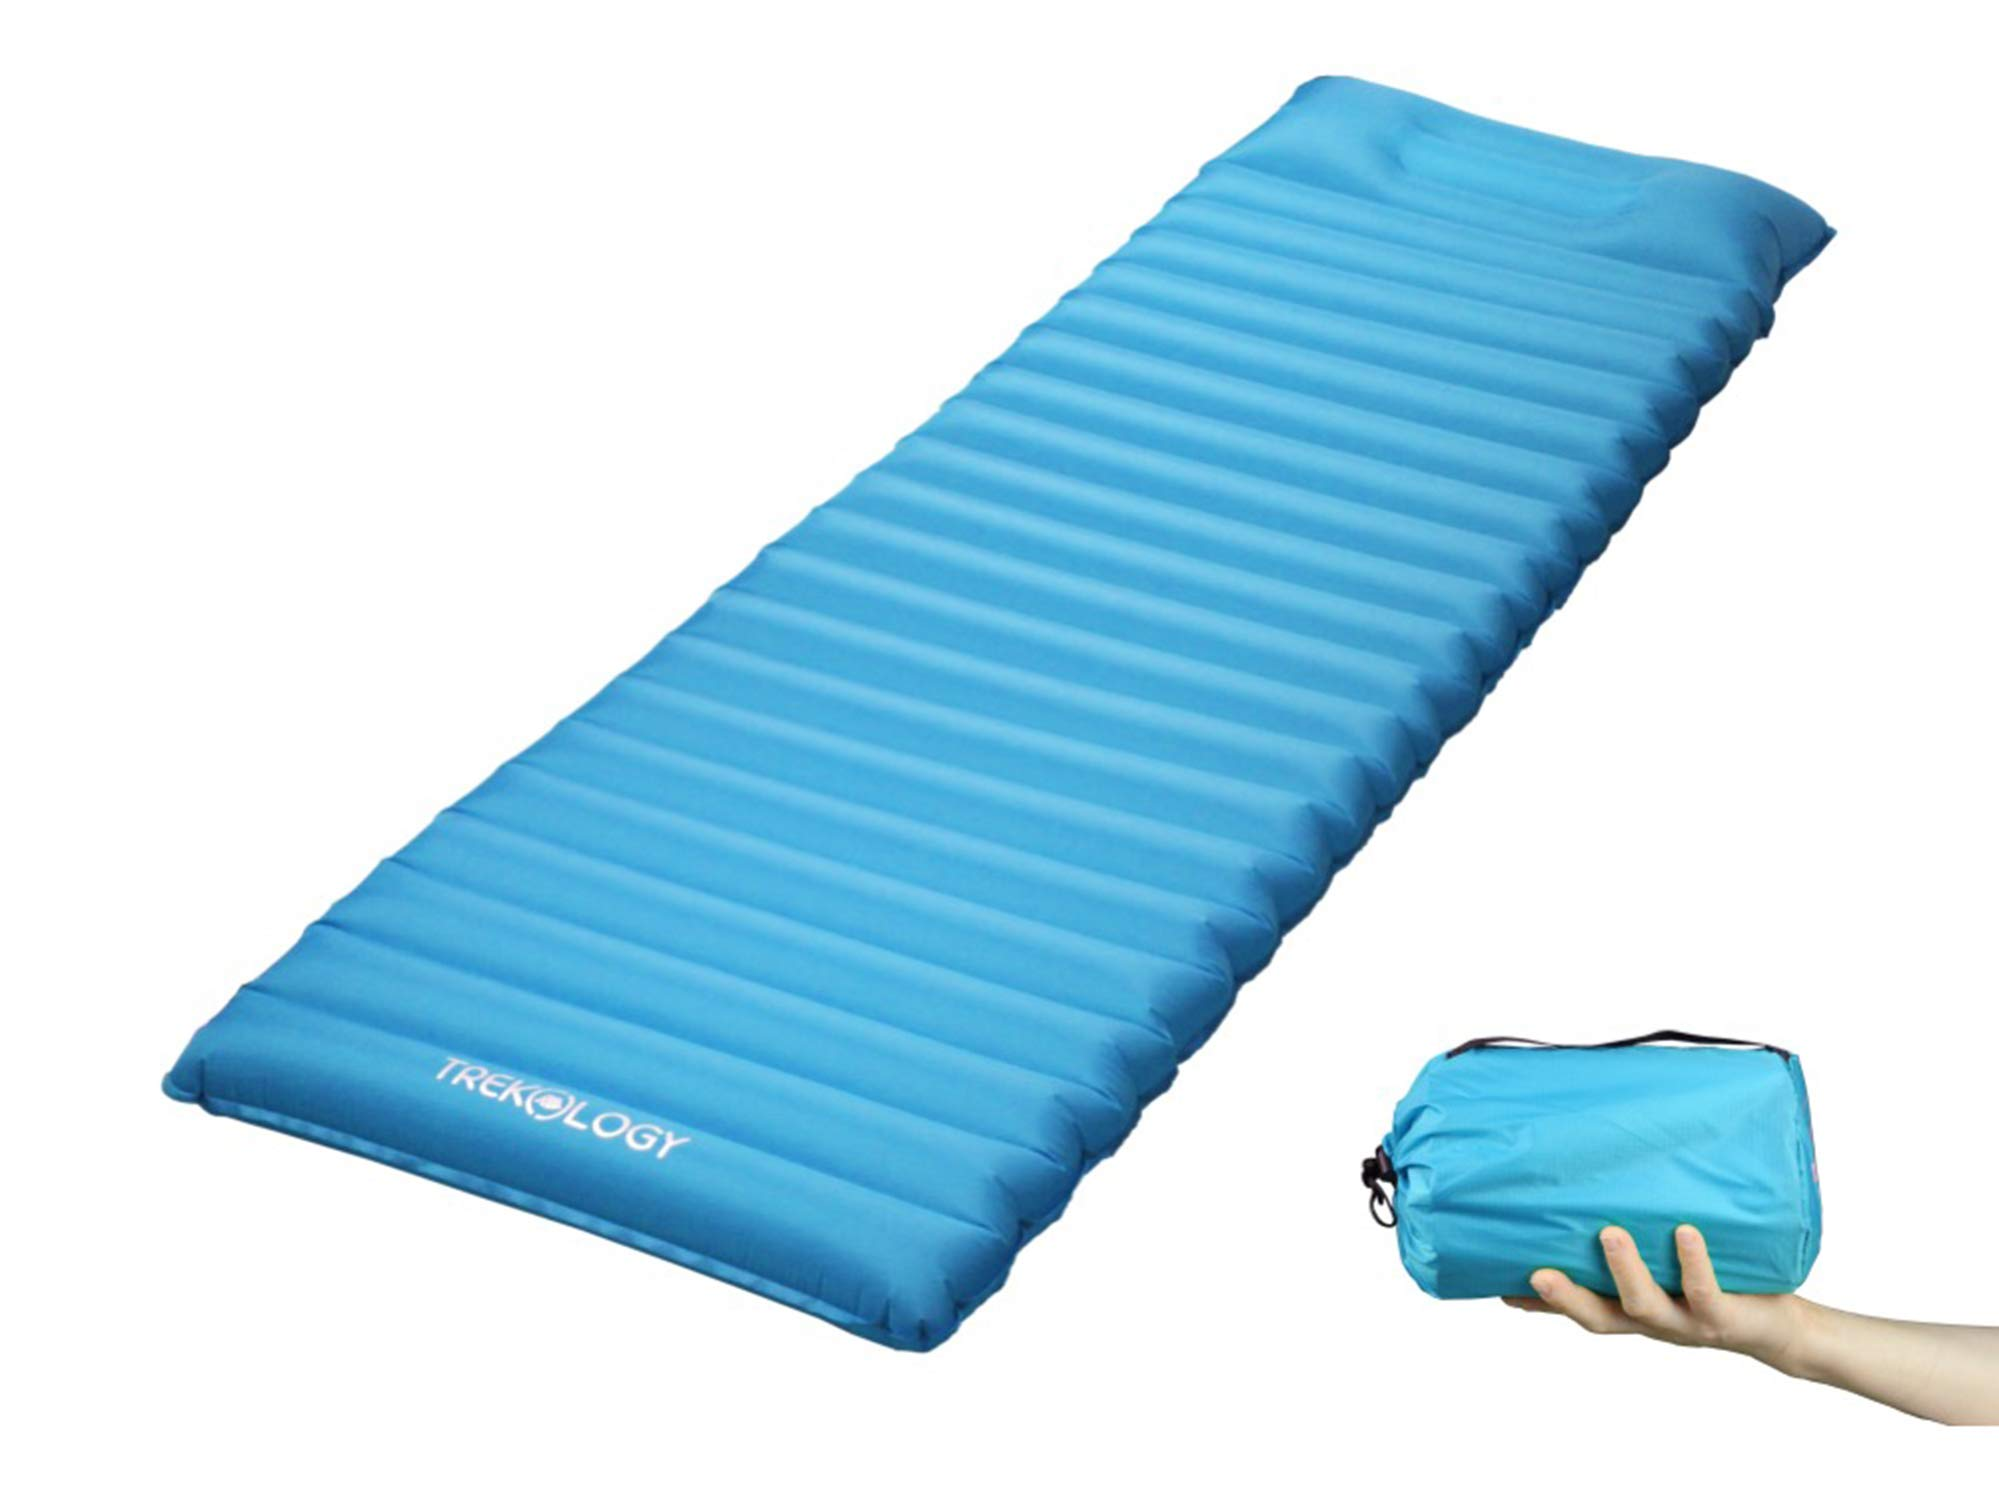 Ultralight Sleeping Pad, Inflating Camping Mattress w/Air Pump Dry Sack Bag - Compact Lightweight Camp Mat, Inflatable Backpacking Gear as Tent Pads (Teal Blue with Built-in Pillow) by Trekology